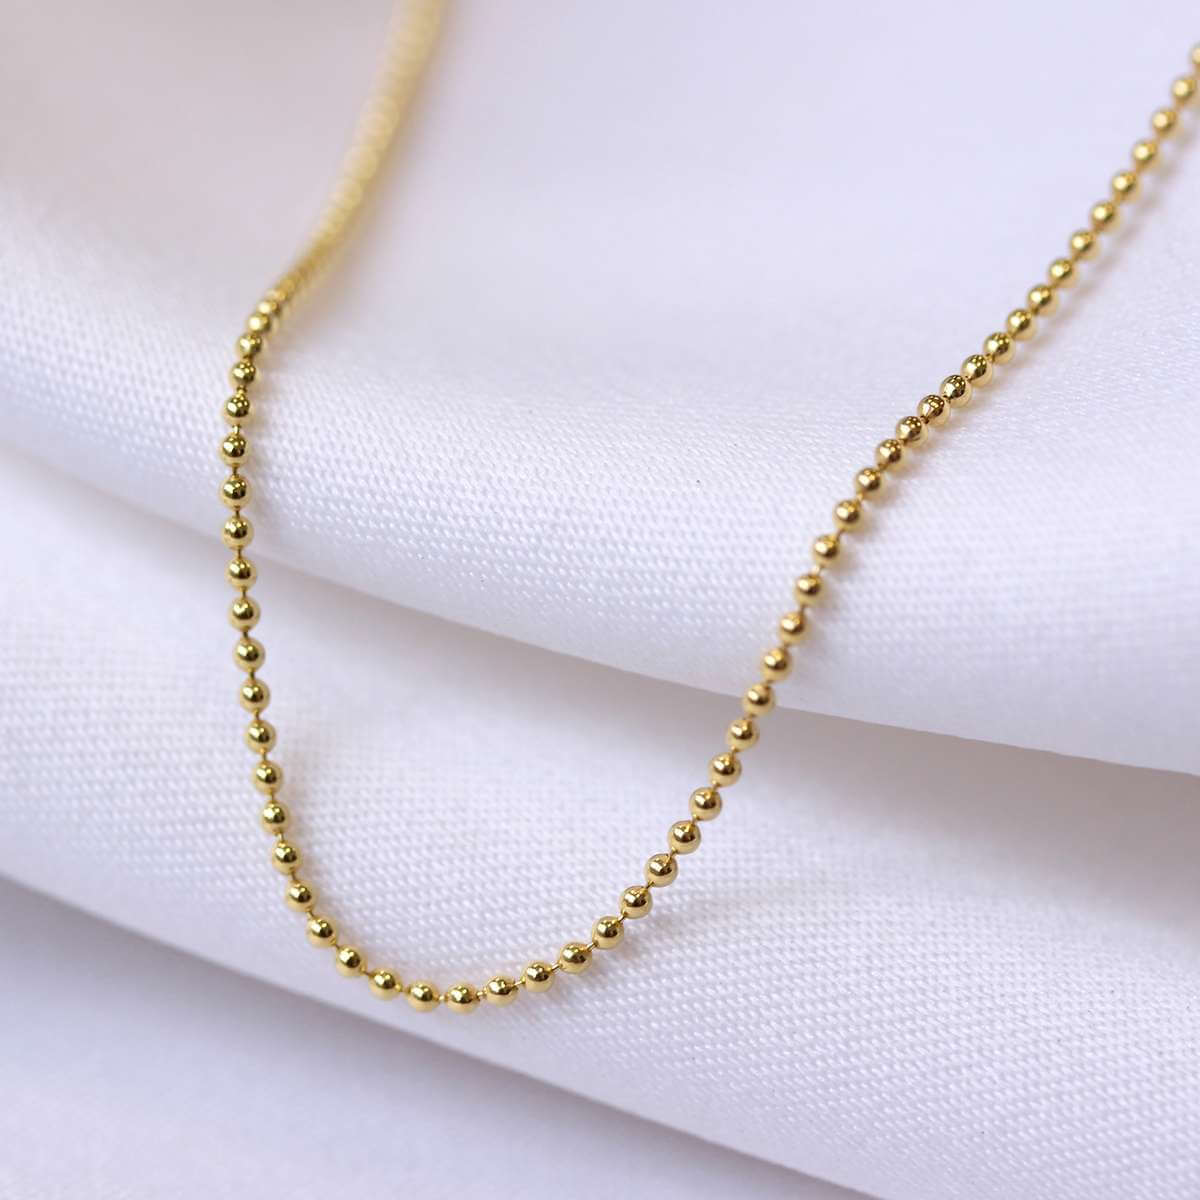 Gold Plated Sterling Silver 1mm Bead Chain 22 Inches